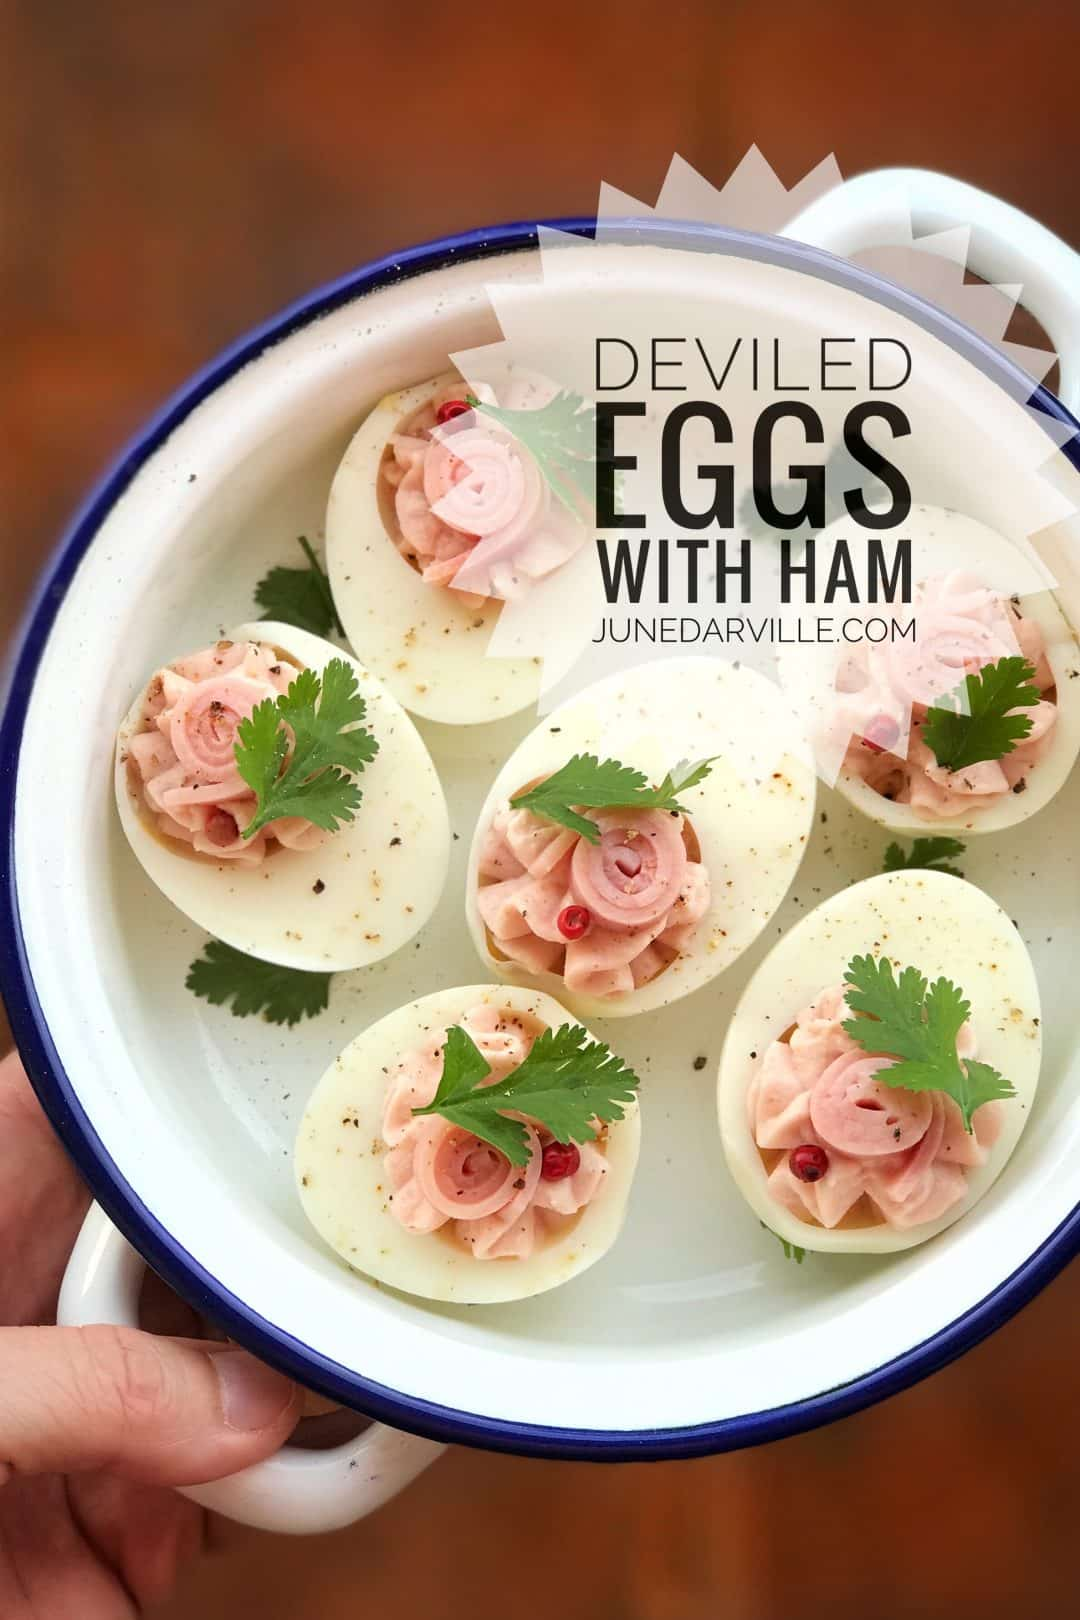 Here's a cute little appetizer bite for you to try out: my super simple deviled eggs stuffed with a creamy ham filling...